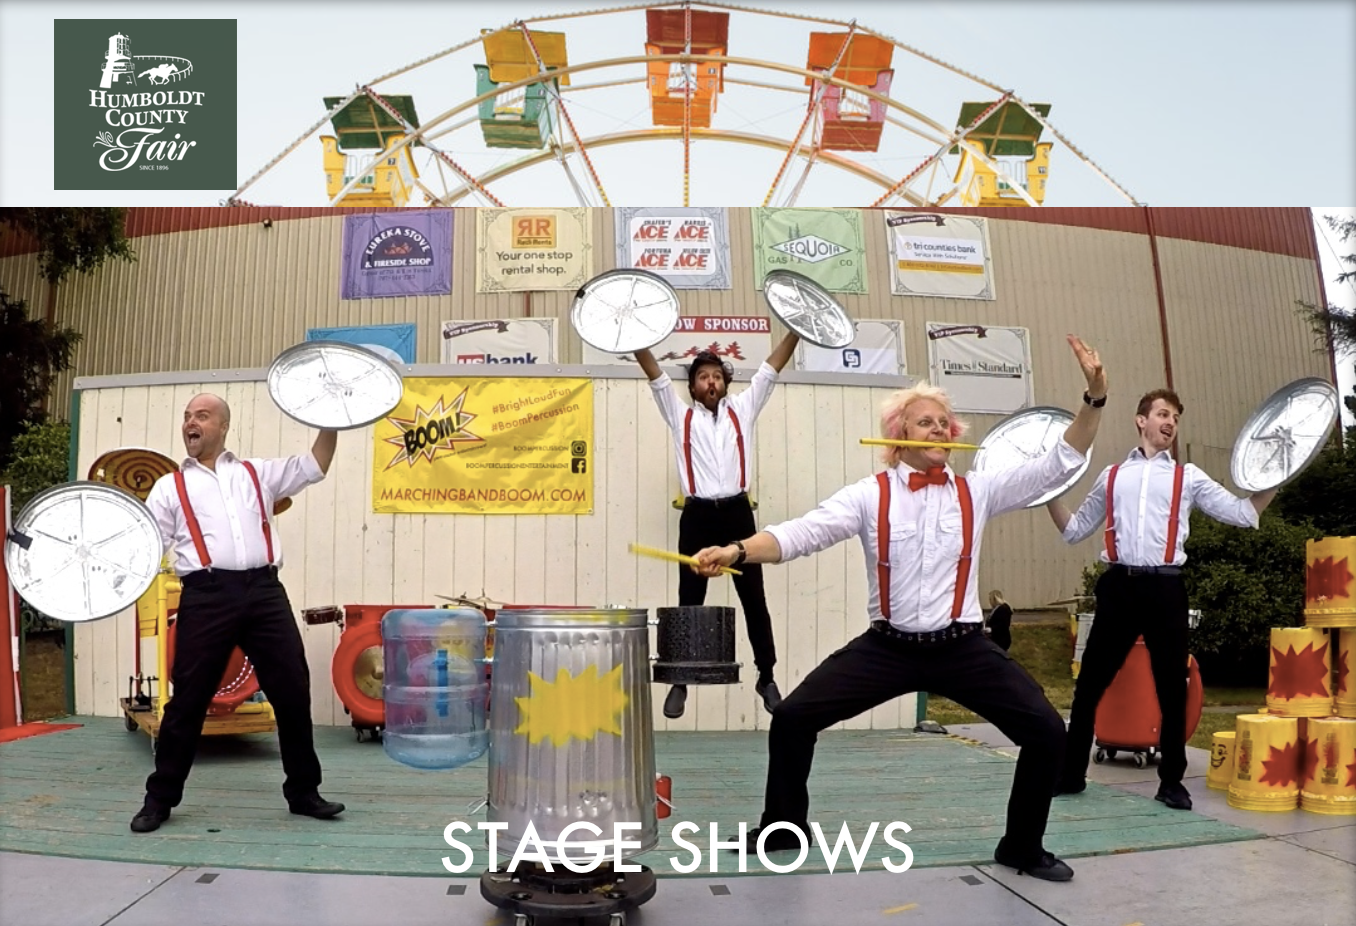 Fair Stage Shows